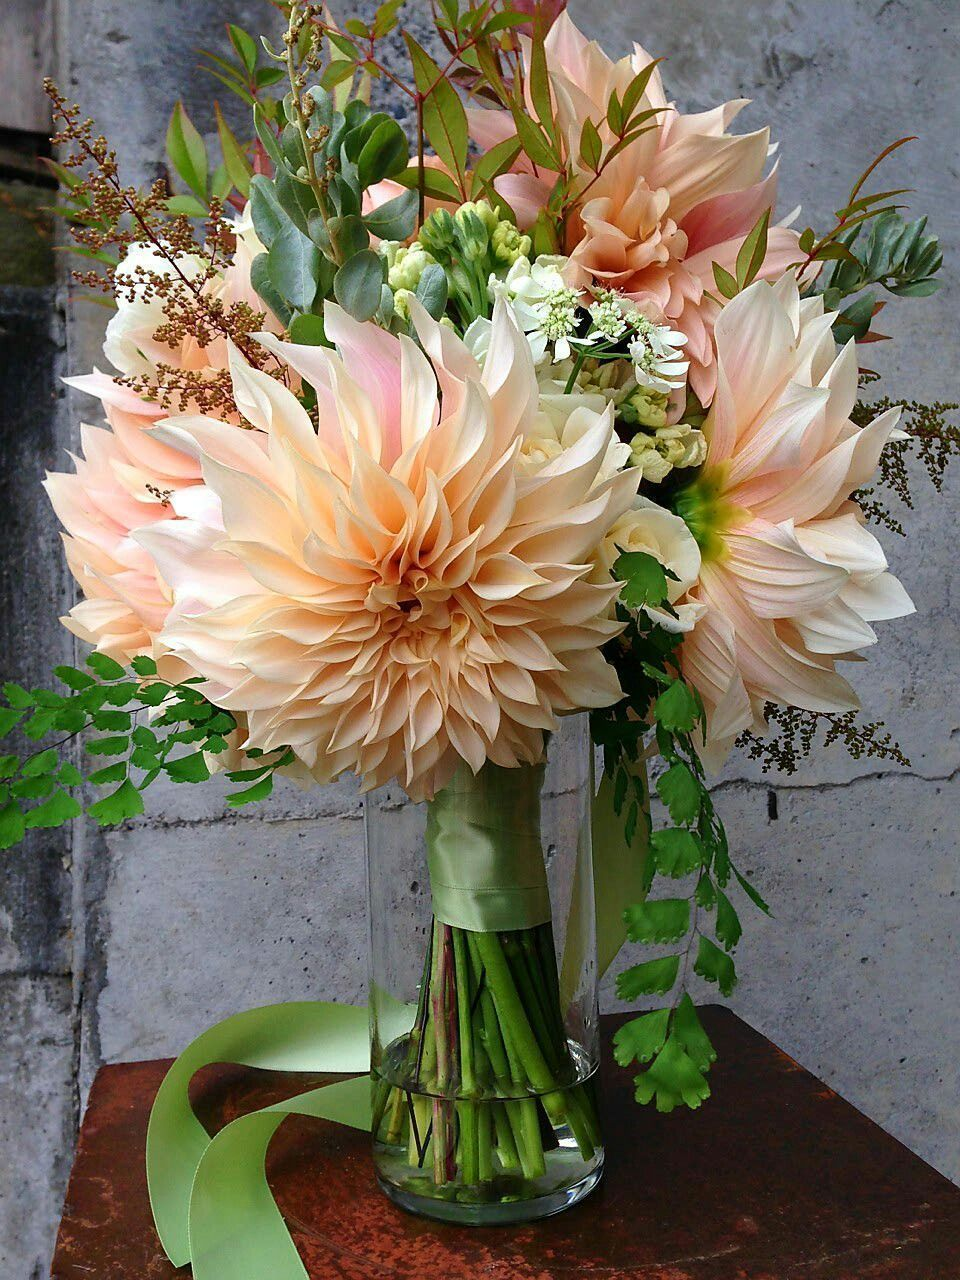 Stunning Hand Tied Wedding Bouquet Featuring Café Au Lait Dinner Plate Dahlias W Dahlia Flower Arrangements Flower Arrangements Beautiful Flower Arrangements